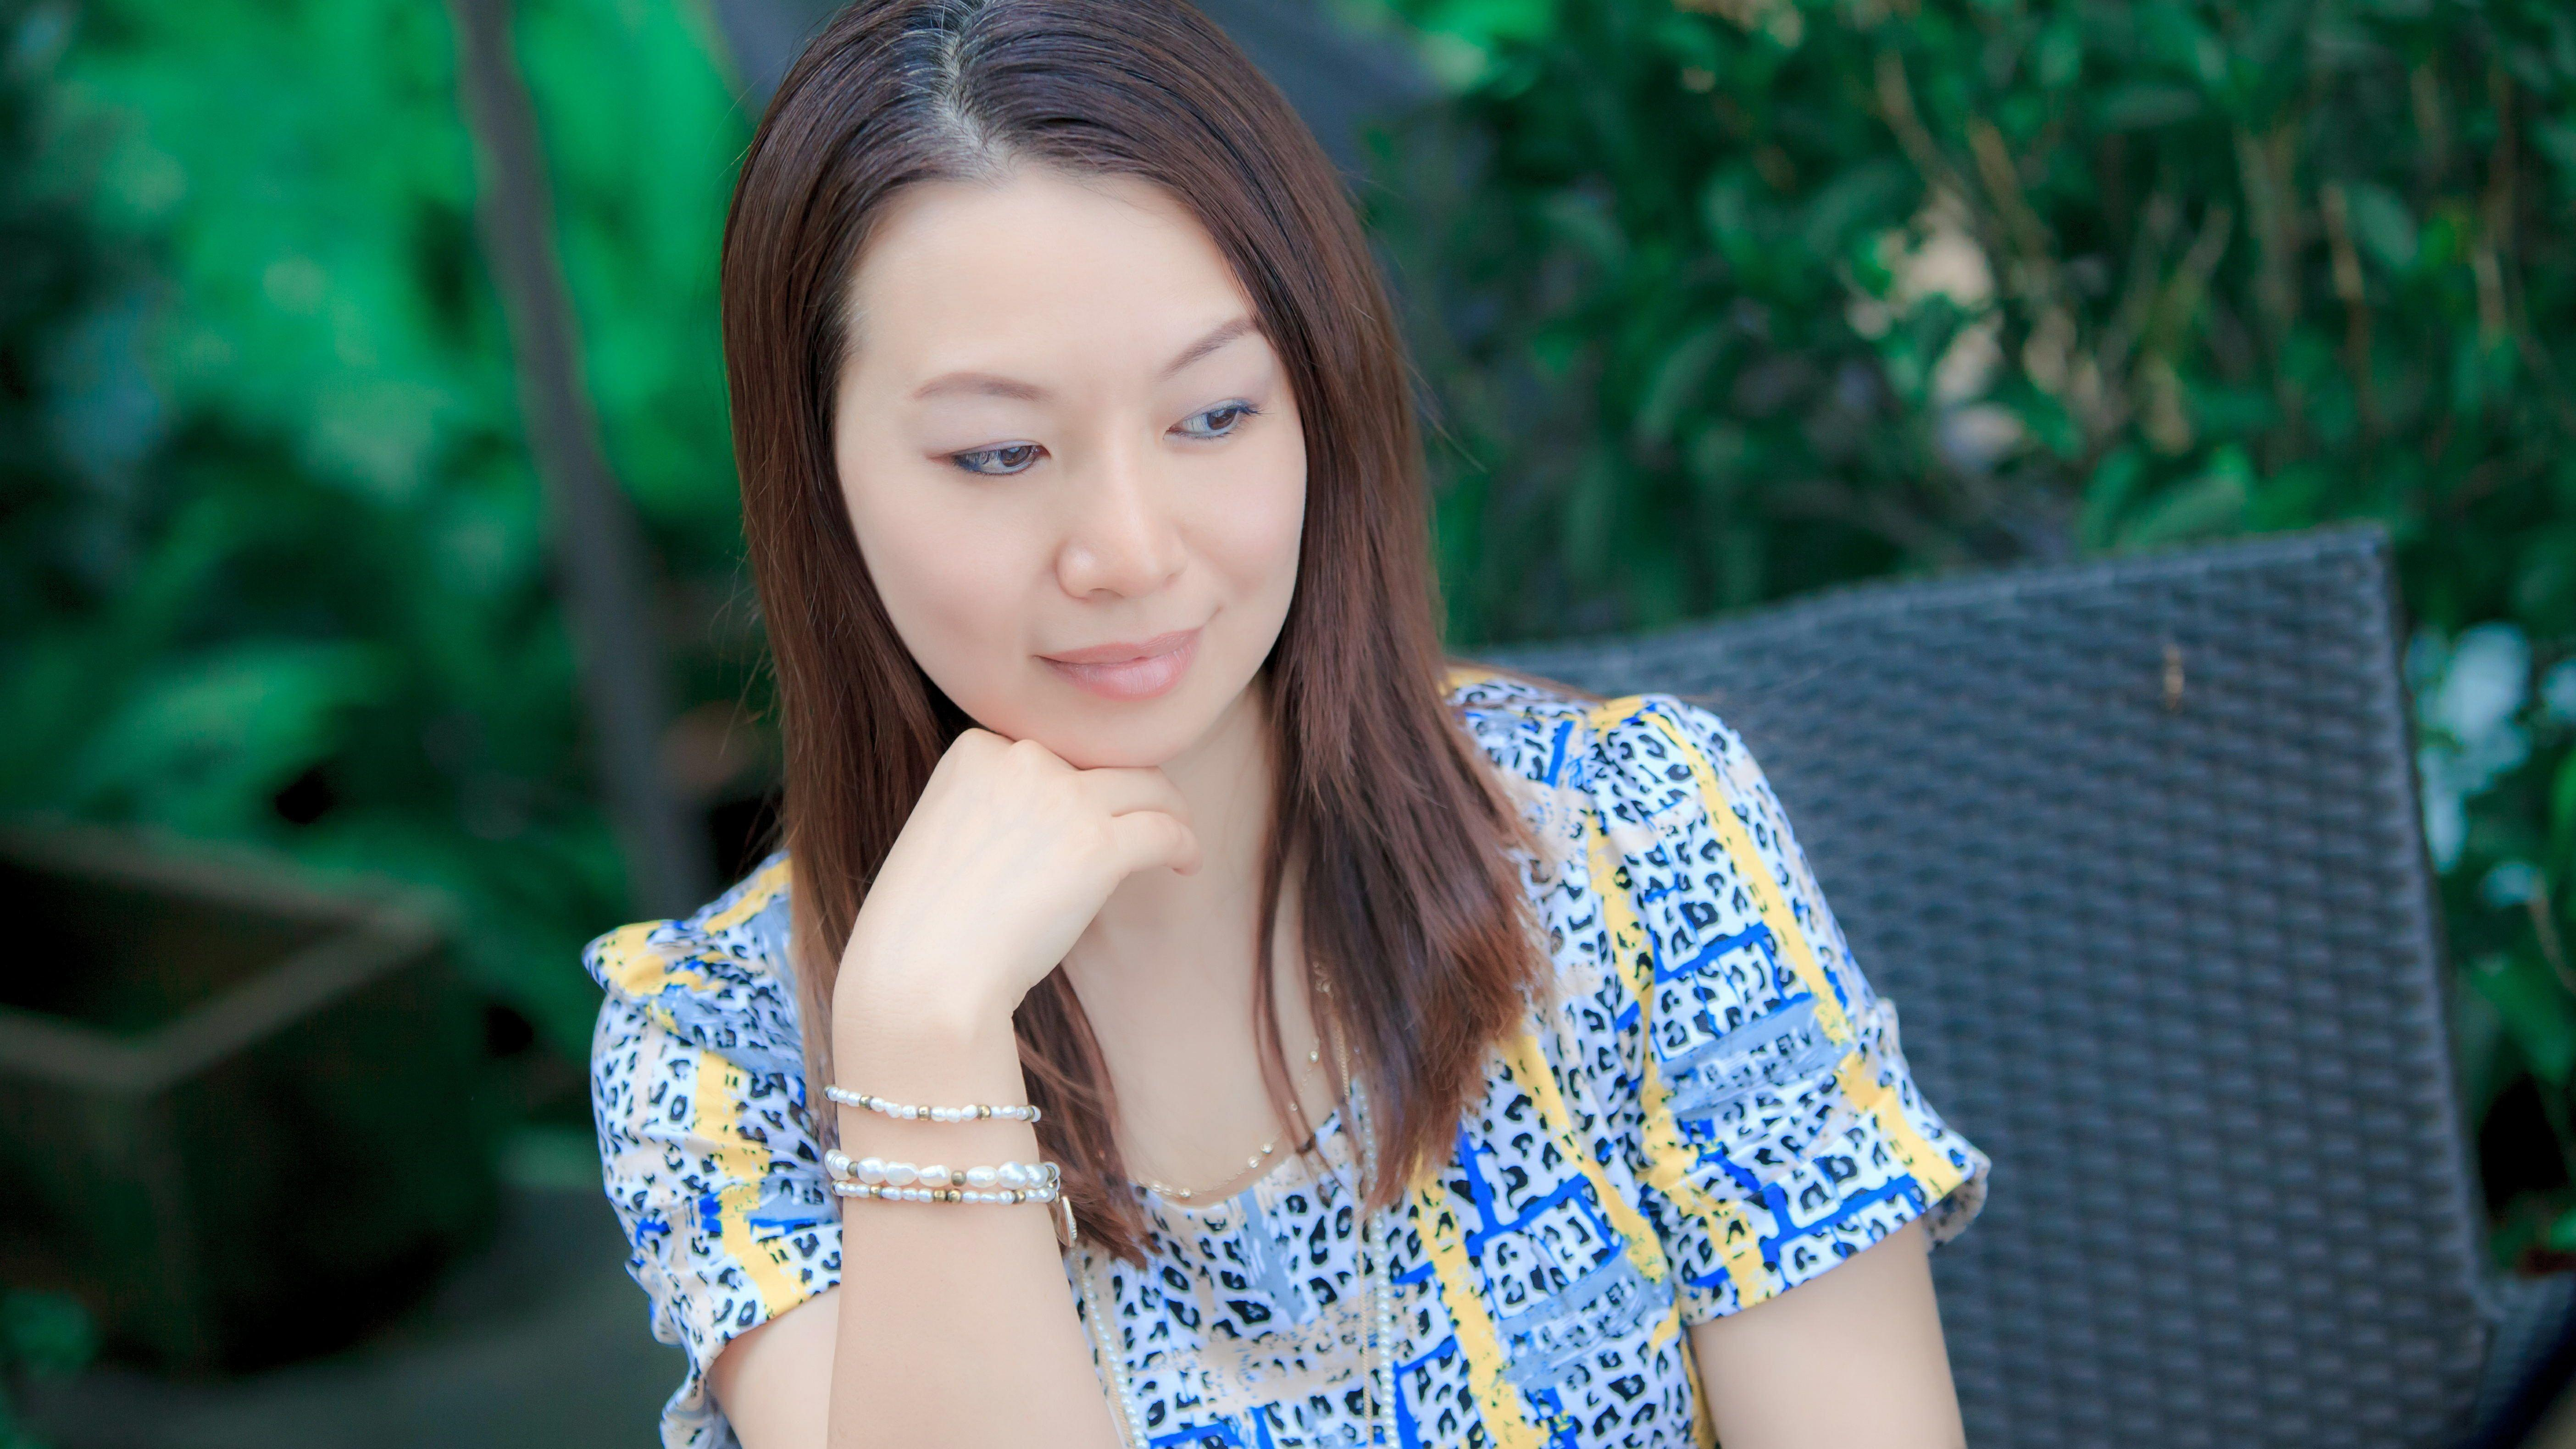 west covina single women Free to join & browse - 1000's of asian singles in west covina, california - interracial dating, relationships & marriage online.